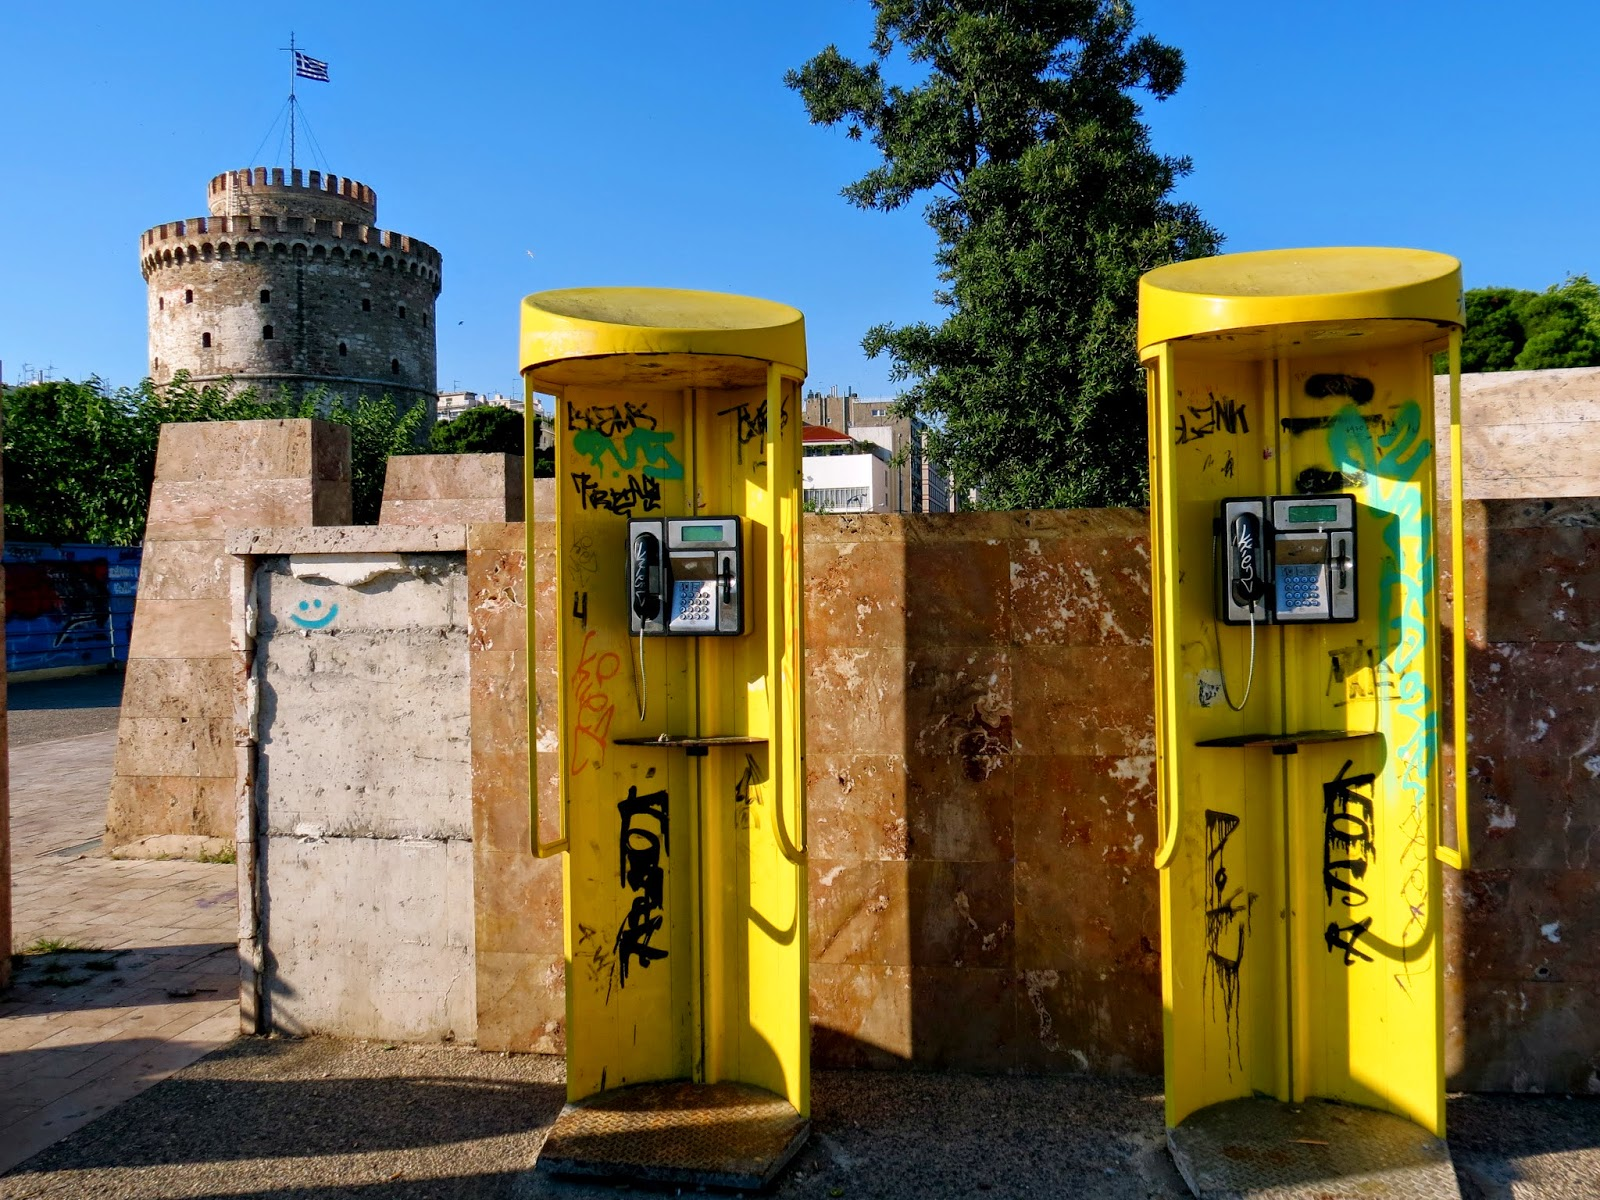 Thessaloniki white tower telephone booth